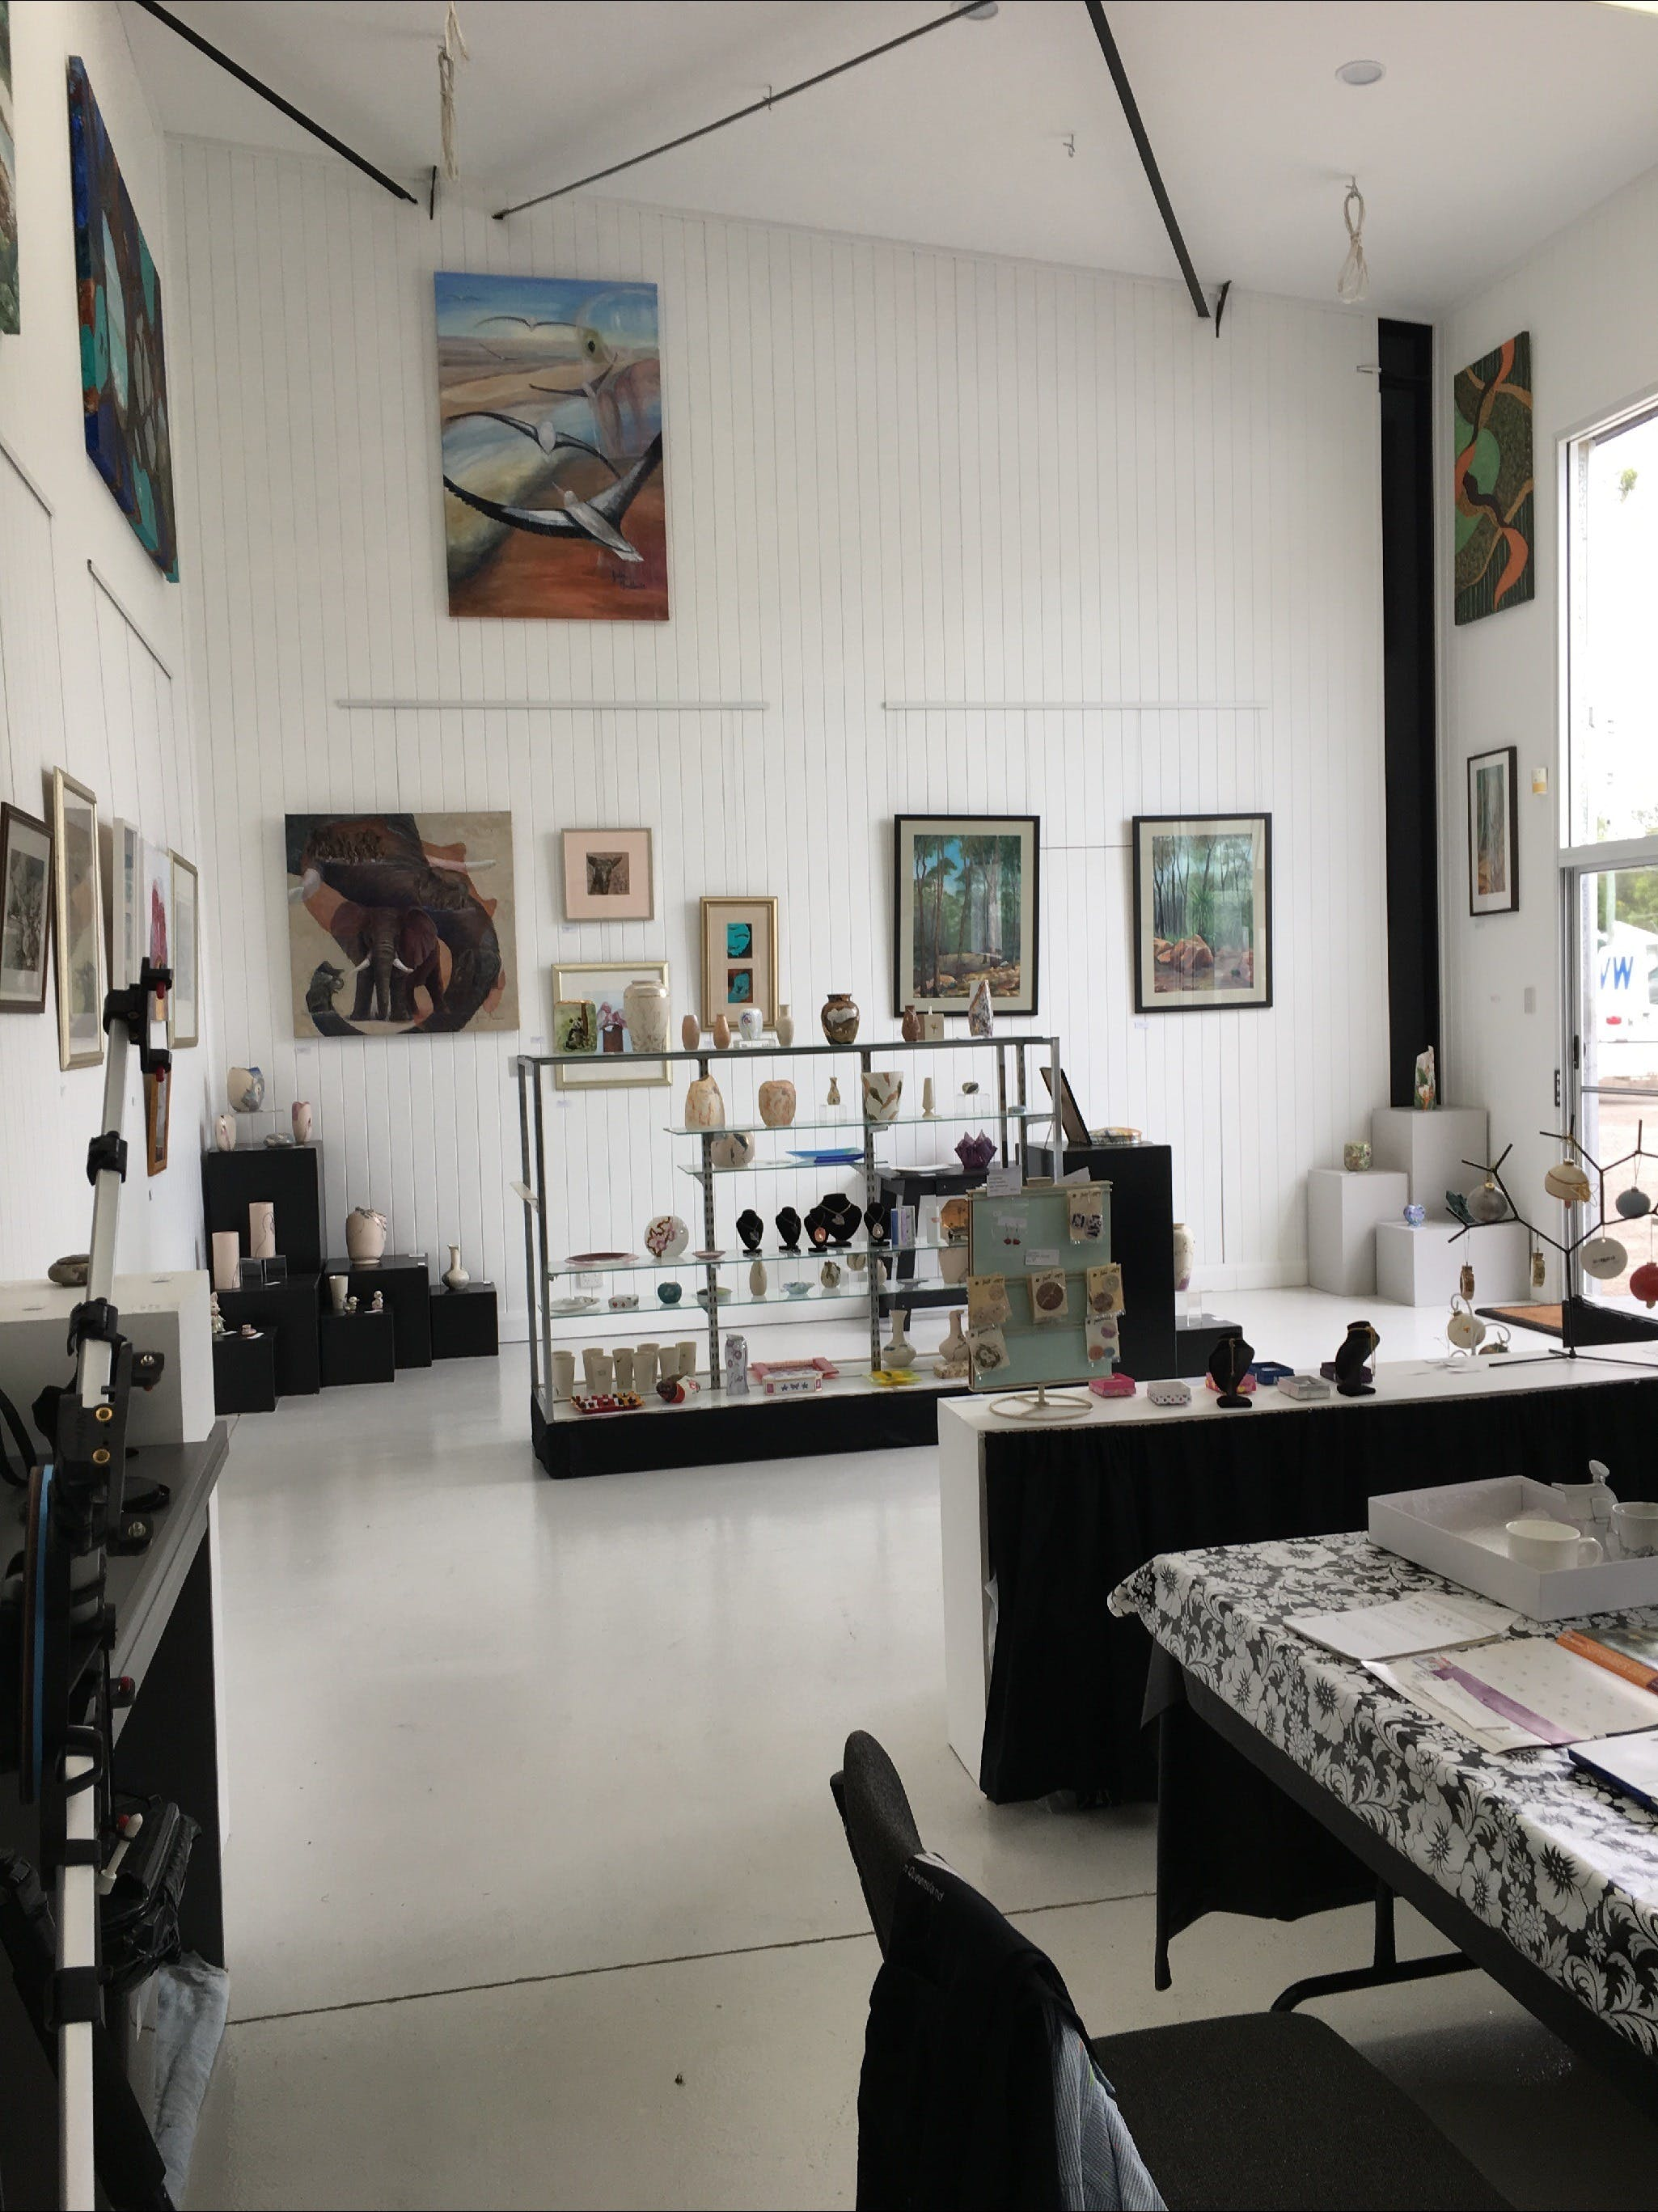 Julesart Studio/Gallery - Attractions